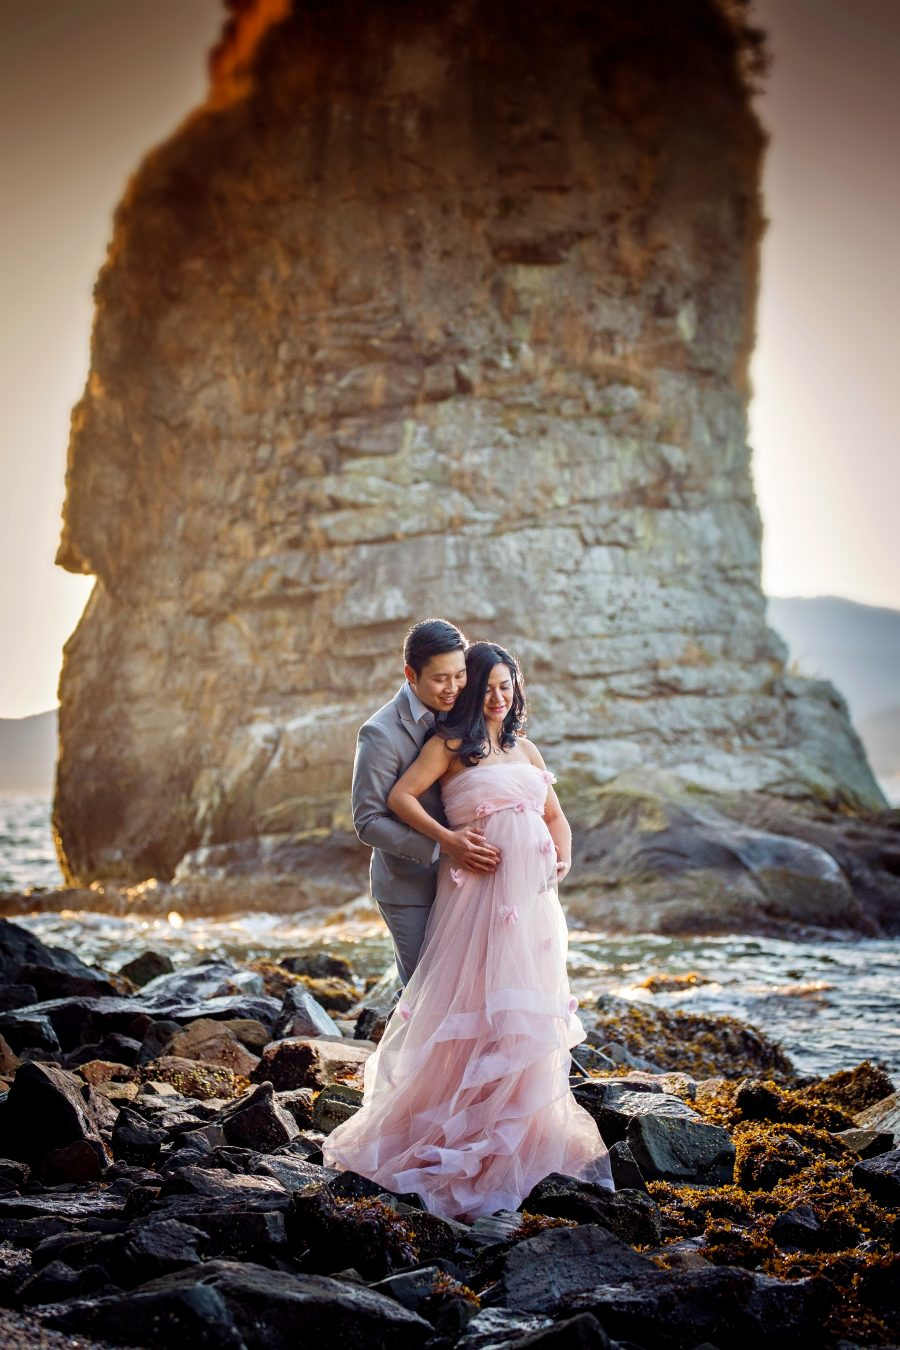 elegant maternity, maternity photographer, gemini visuals, vancouver maternity photographer